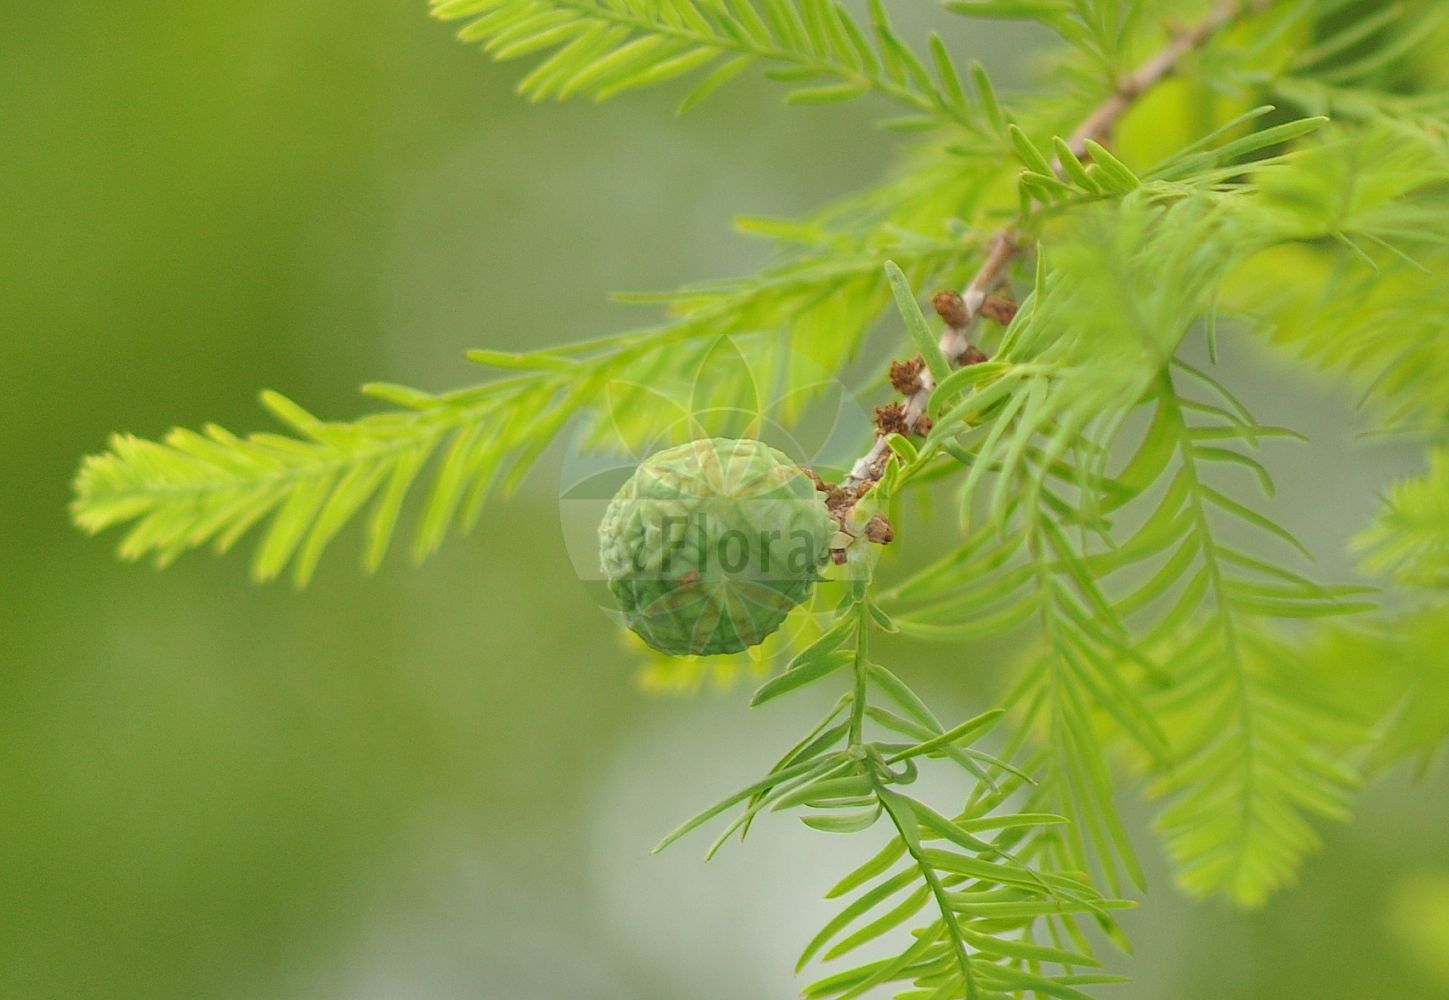 Foto von Metasequoia glyptostroboides (Urweltmammutbaum - Dawn Redwood). Das Bild zeigt Zweig, Blatt und Zapfen. ---- Photo of Metasequoia glyptostroboides (Urweltmammutbaum - Dawn Redwood).The image is showing twig, leaf and cone.(Metasequoia glyptostroboides,Urweltmammutbaum,Dawn Redwood,Metasequoia,Urweltmammutbaum,Dawn Redwood,Cupressaceae,Zypressengewaechse,Cypress family,Zweig,Blatt,Zapfen,twig,leaf,cone)